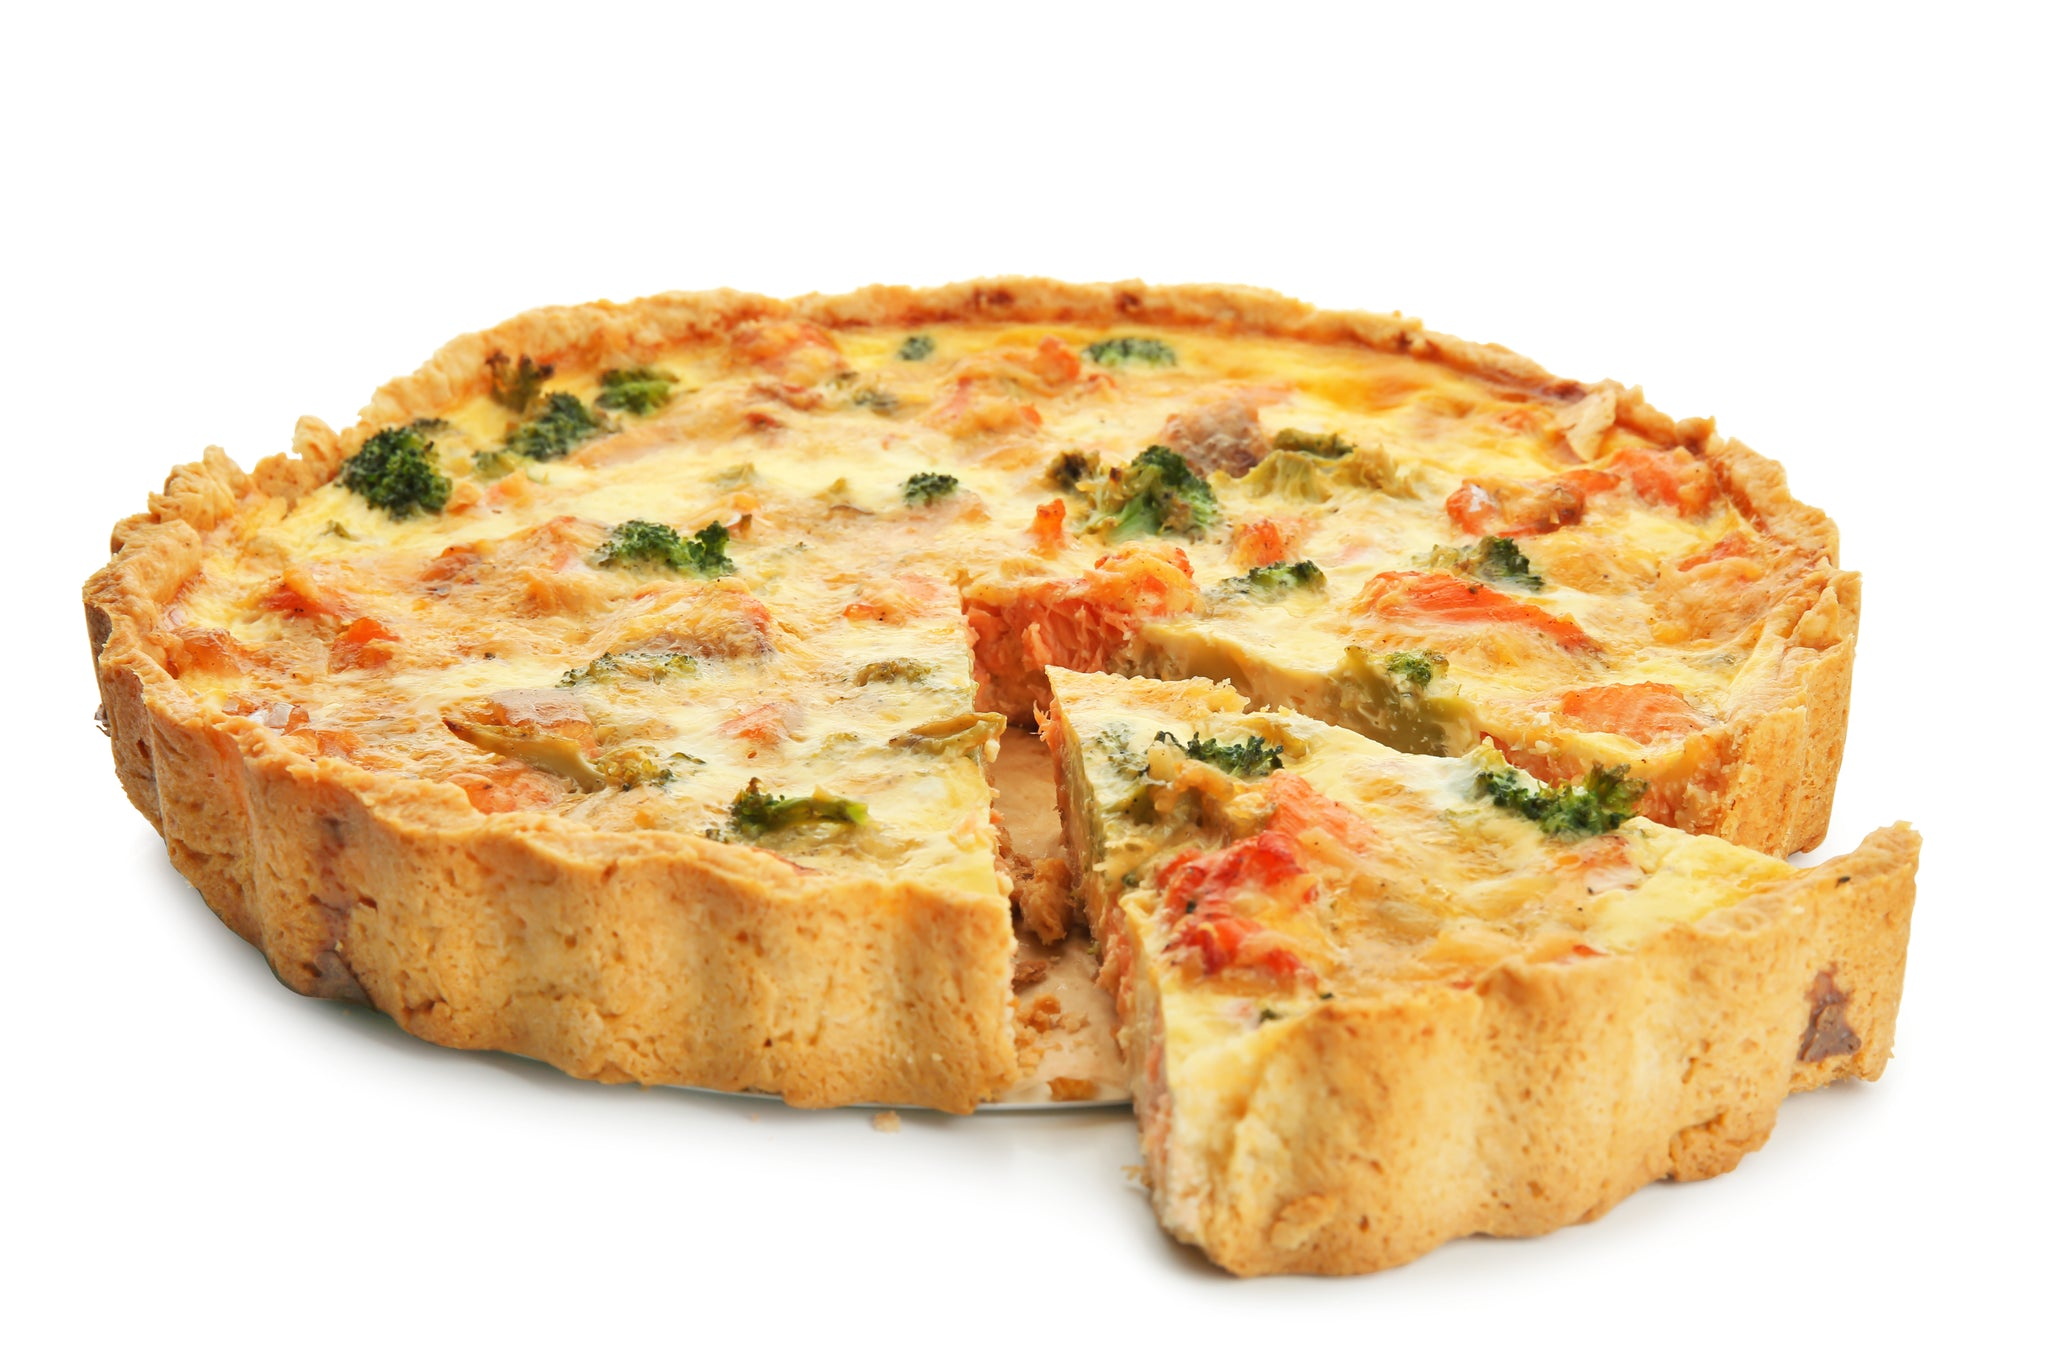 tha>Ladypie Quiche Vegetarian - Spinach and Cheese Quiche 23 cm 1.3 kg